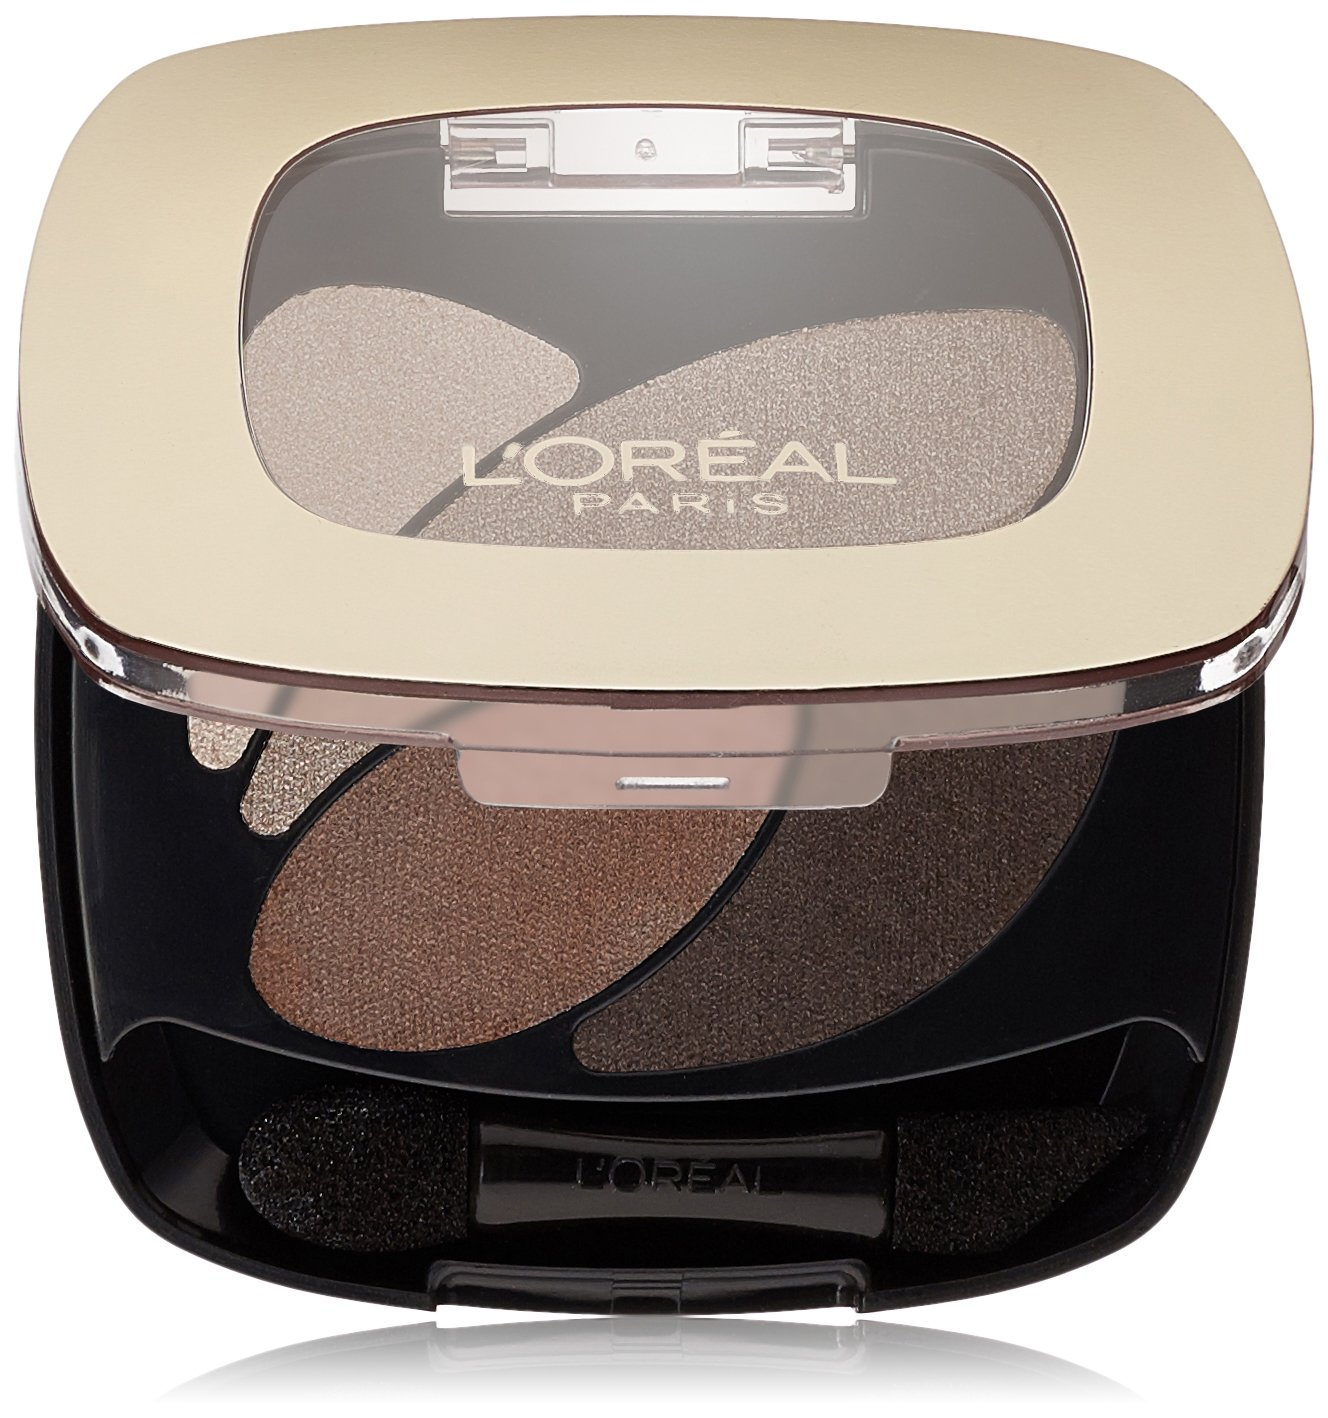 L'Oréal Paris Colour Riche Dual Effects Eye Shadow, Absolute Taupe, 0.12 oz.